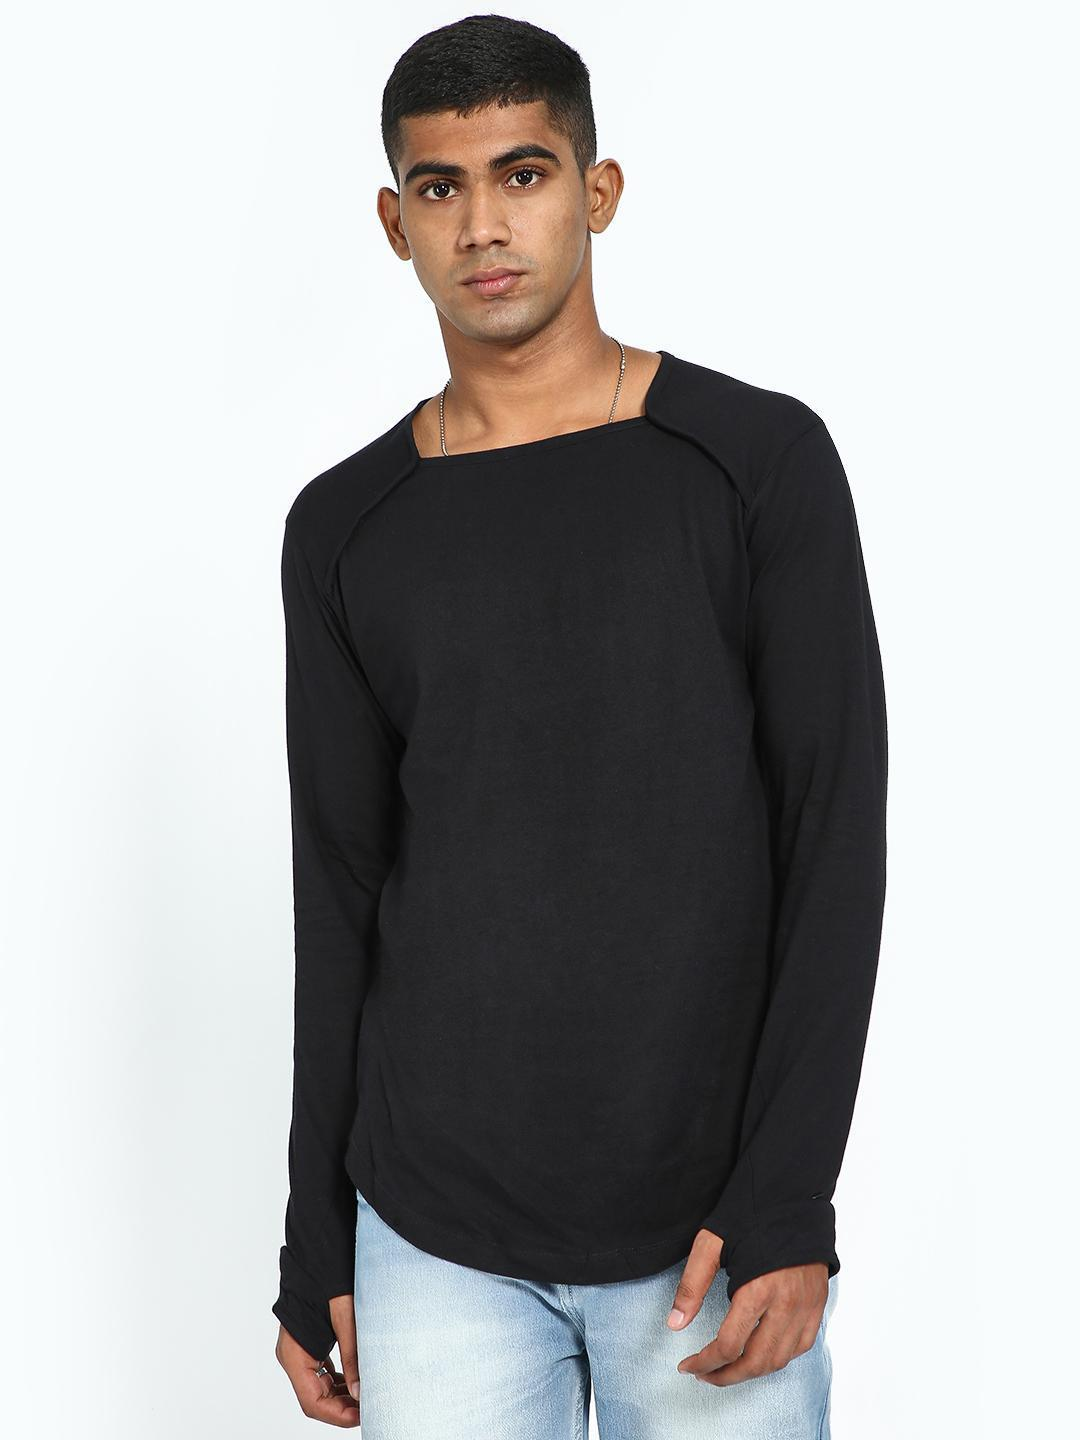 Kultprit Black Square Neck Thumb-Hole T-Shirt 1